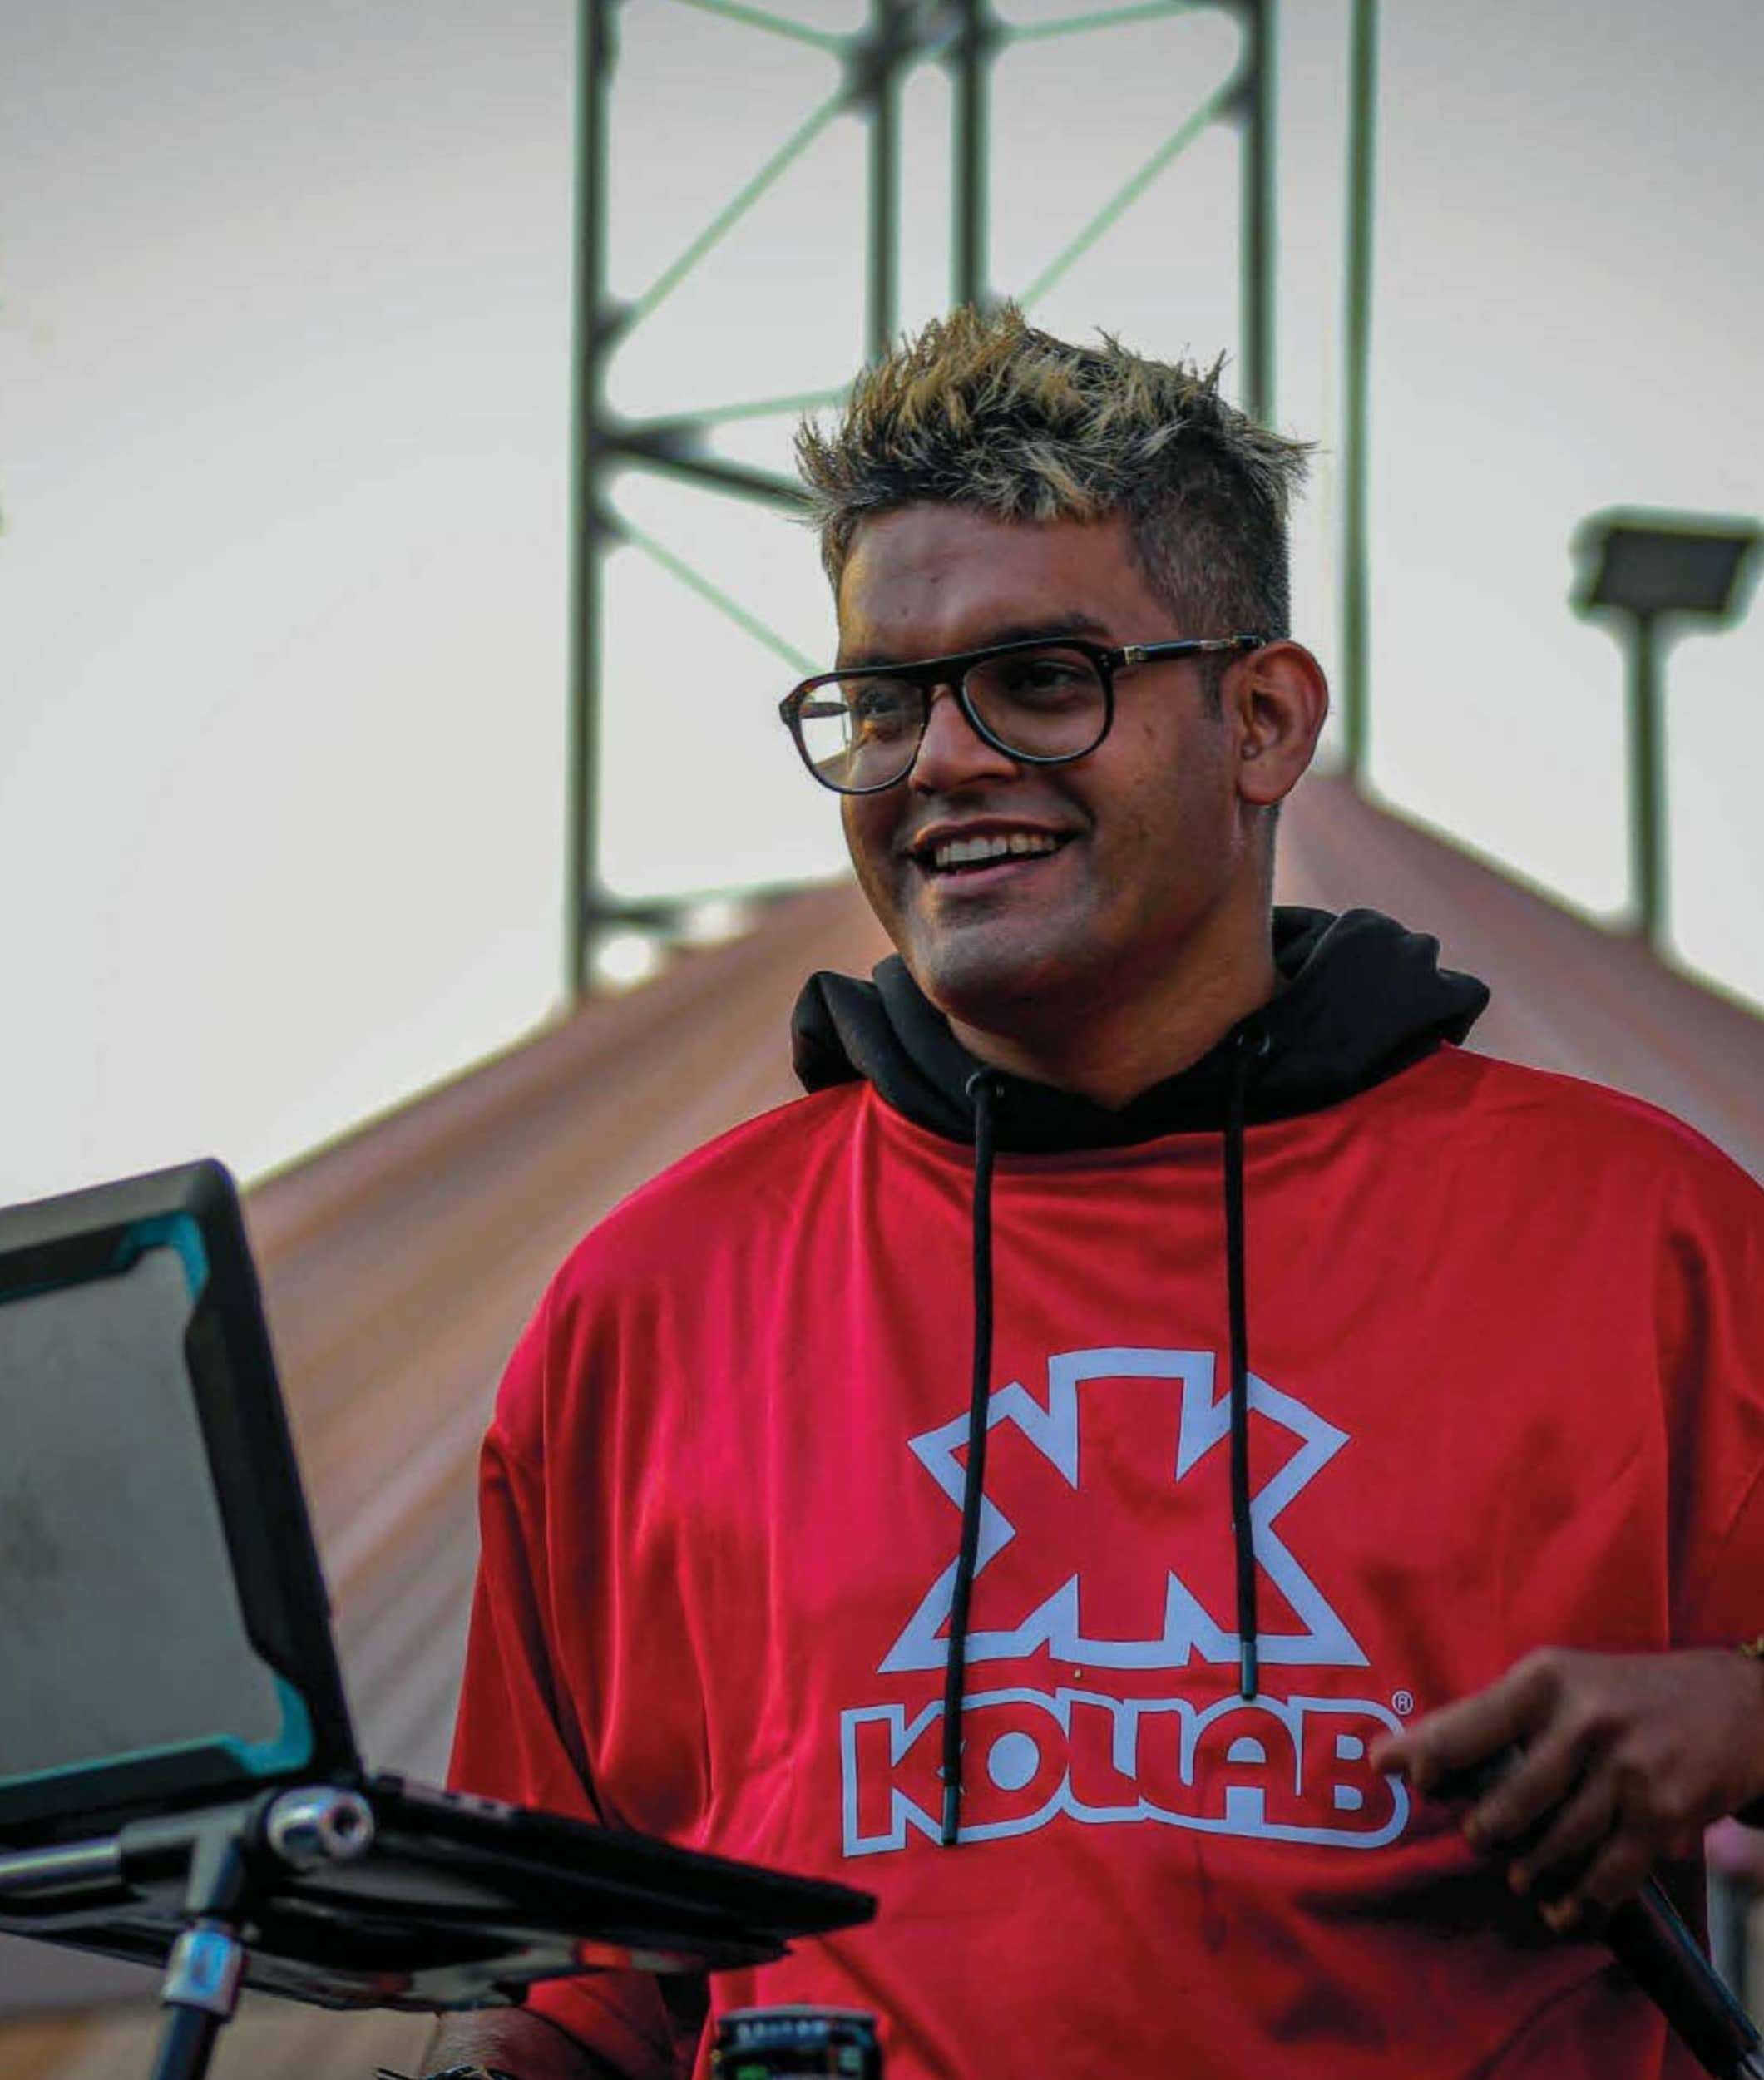 Meet the DJ Who Dropped the Deck to Be on the COVID-19 Frontline